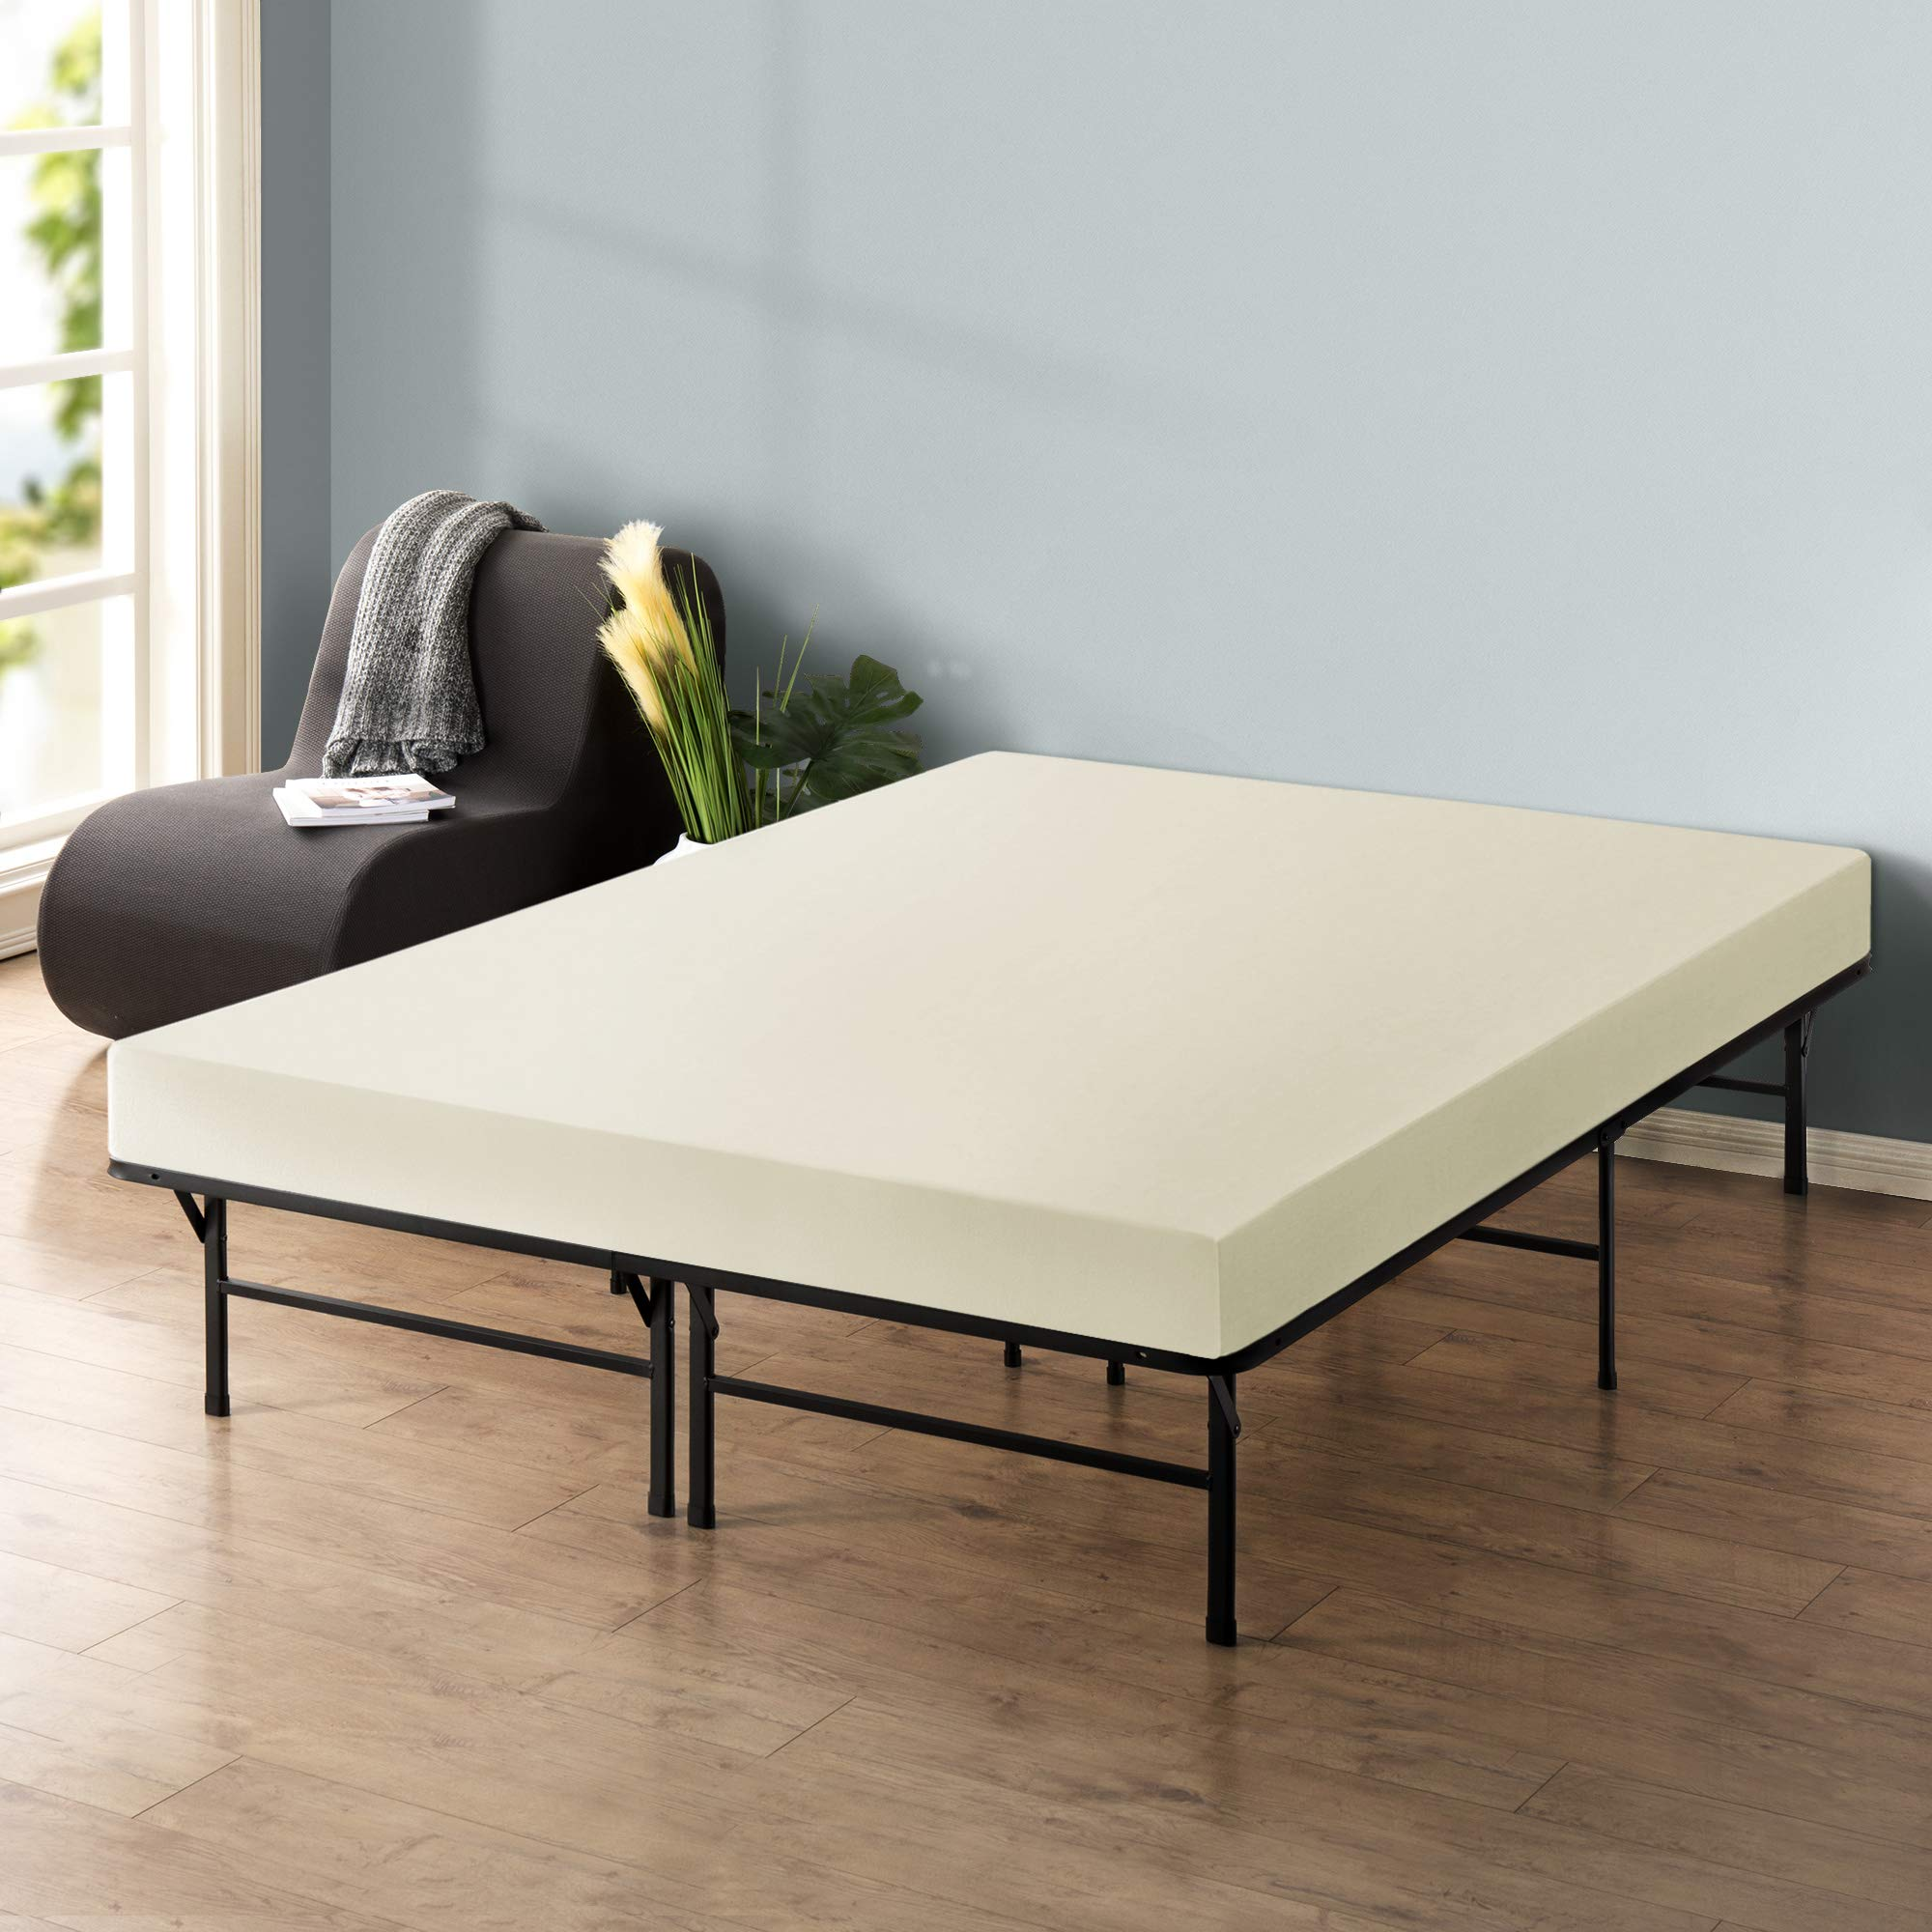 Best Price Mattress 6'' Memory Foam Mattress and 14'' Premium Steel Bed Frame/Foundation Set, Twin